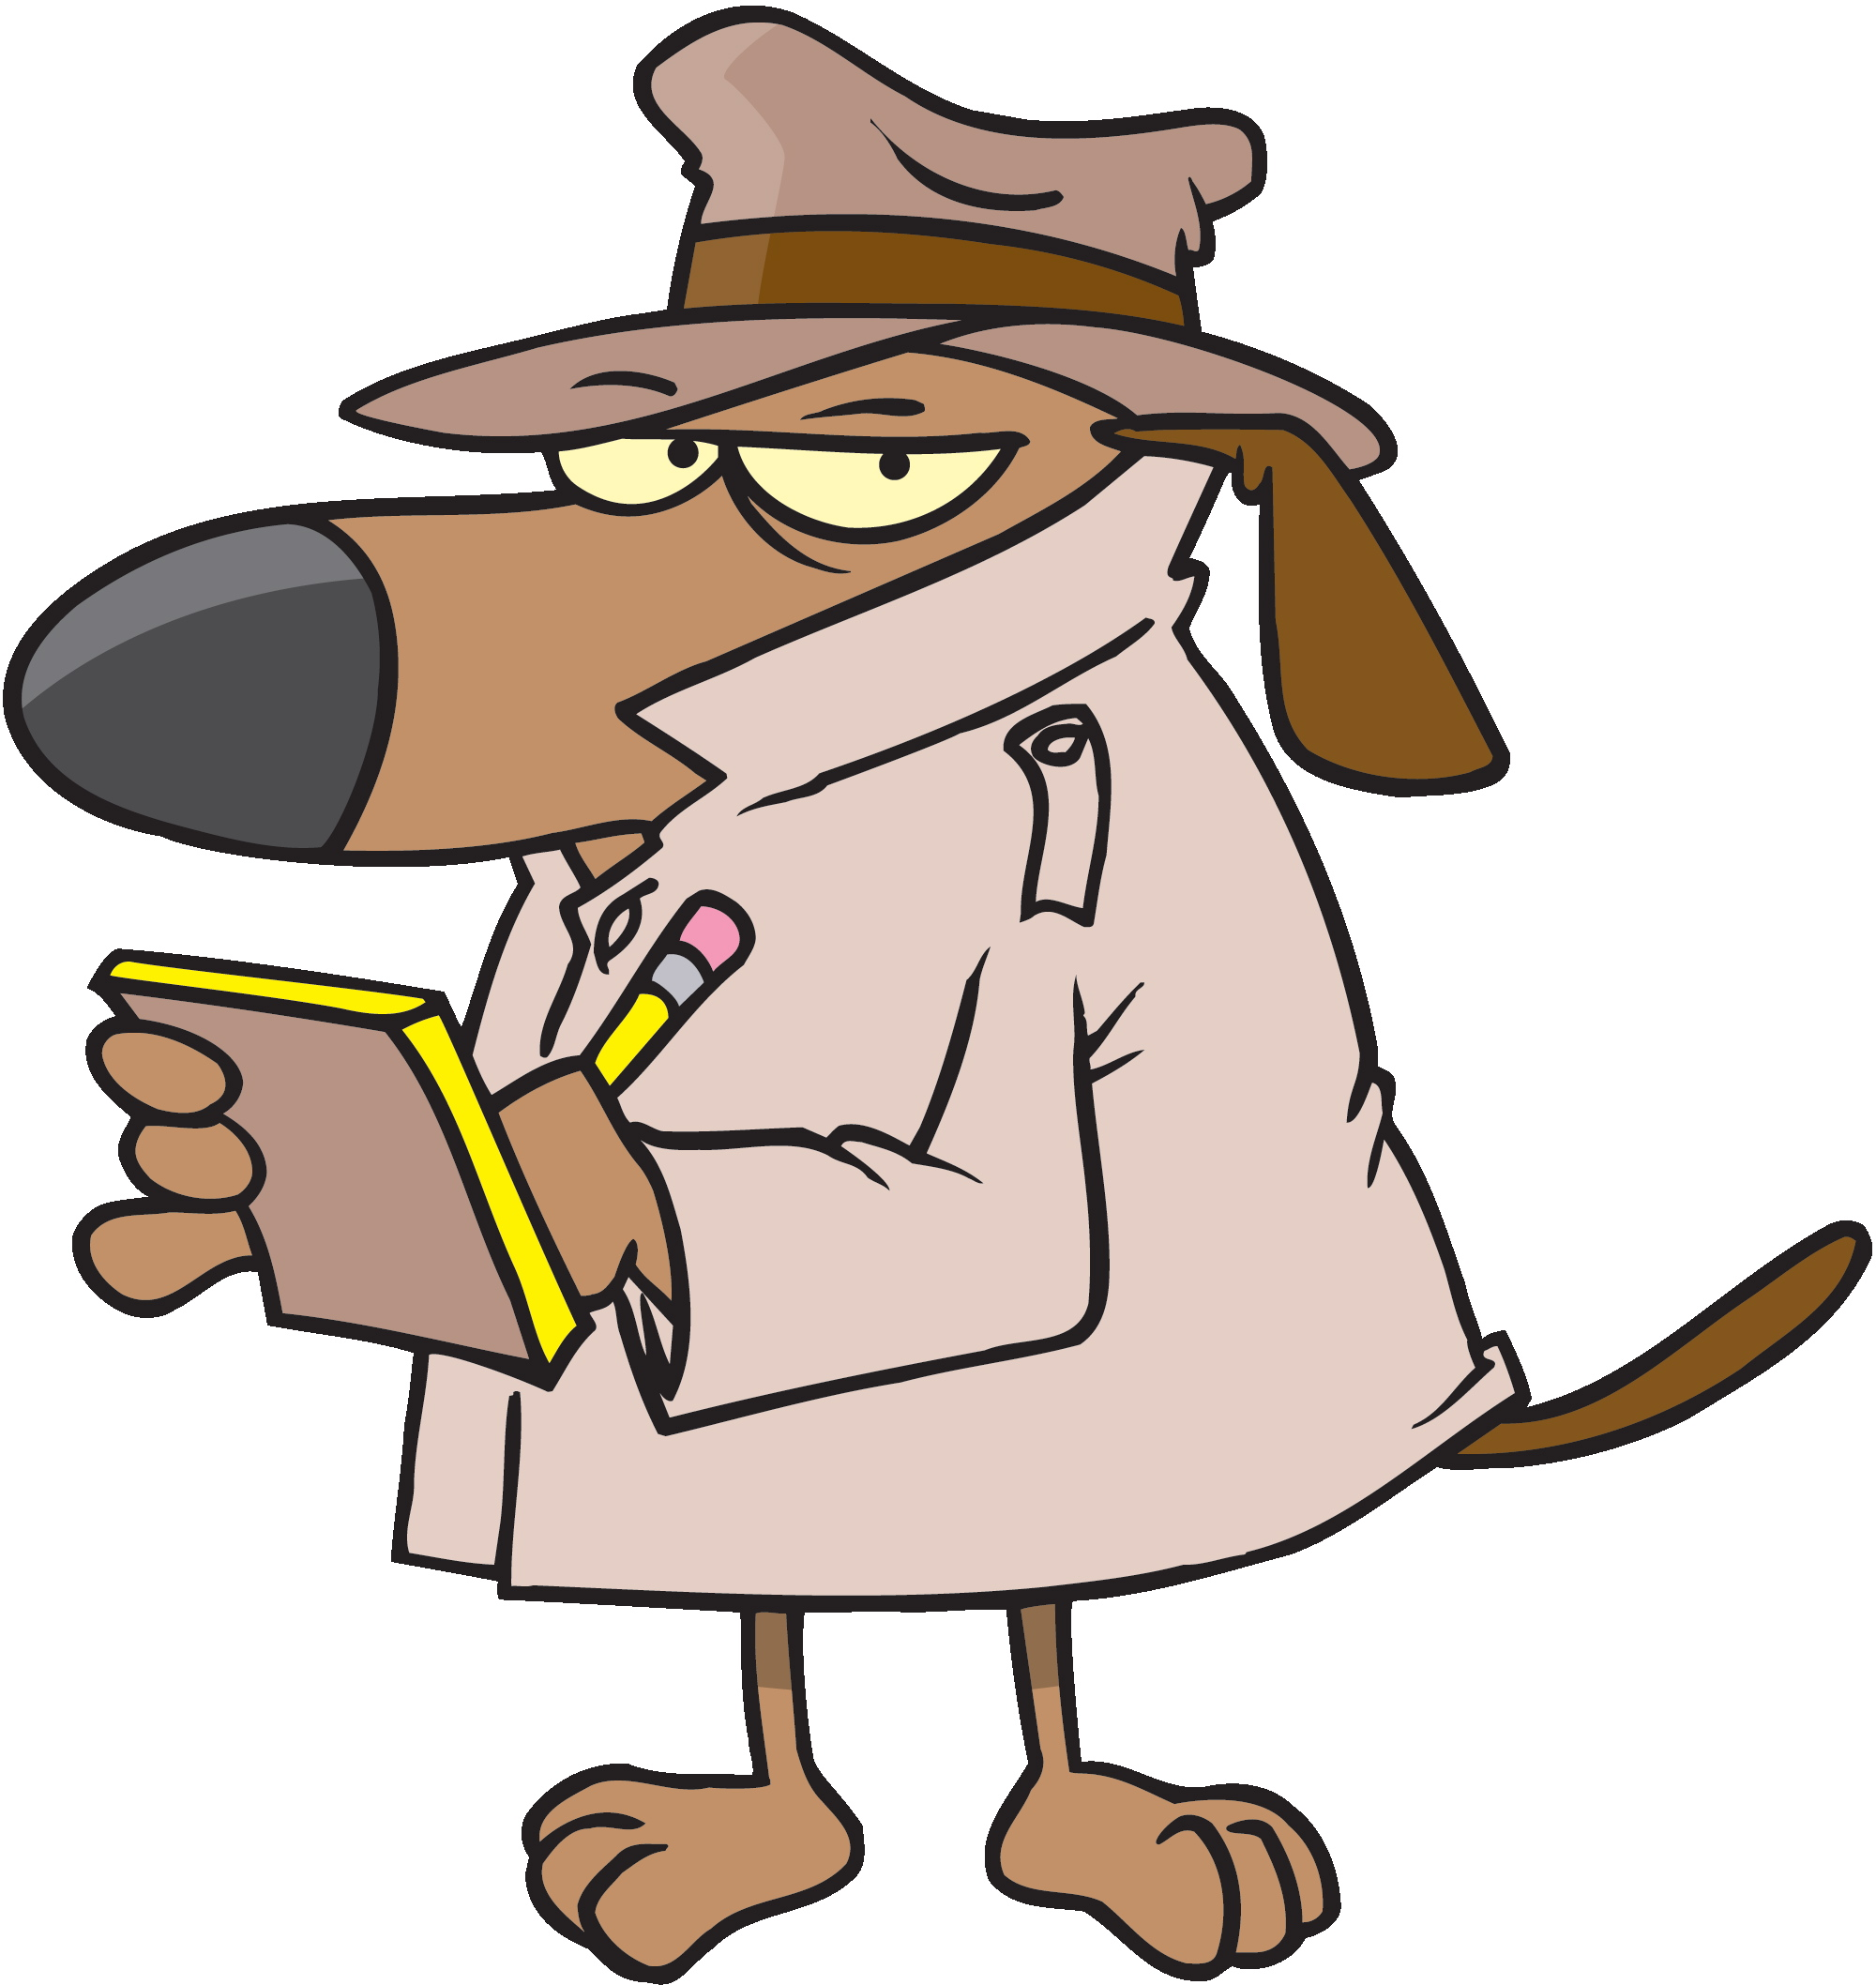 Watch dog clipart.